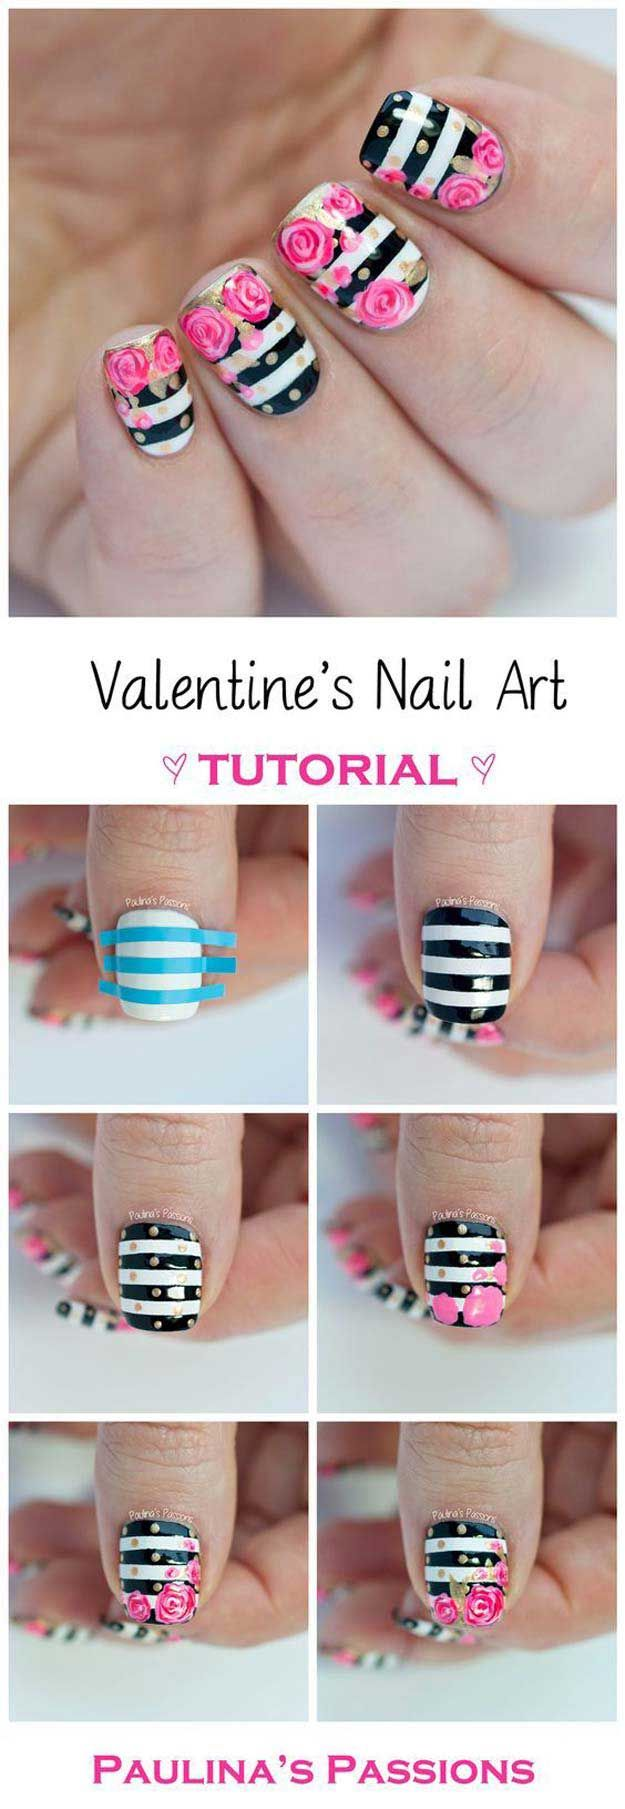 Best Gel Nail Designs - Valentine's Roses Nail Art Tutorial - Beautiful Gel Nail Designs And Pictures Of Manicures And Nailart To Give You Some Awesome Fashion Style. Step By Step Tutorials And Tips And Tricks And Ideas For Shape And Colour. Polish And Shape Your Nails To Match Your Makeup And Follow These Art Tutorials To Get That Sparkle In Your Tips. Try The Best Gel Nail Designs With Ideas For Summer, Fall, Spring, And Winter. Gel Nail Art Is Awesome And Goes Great With These Application…